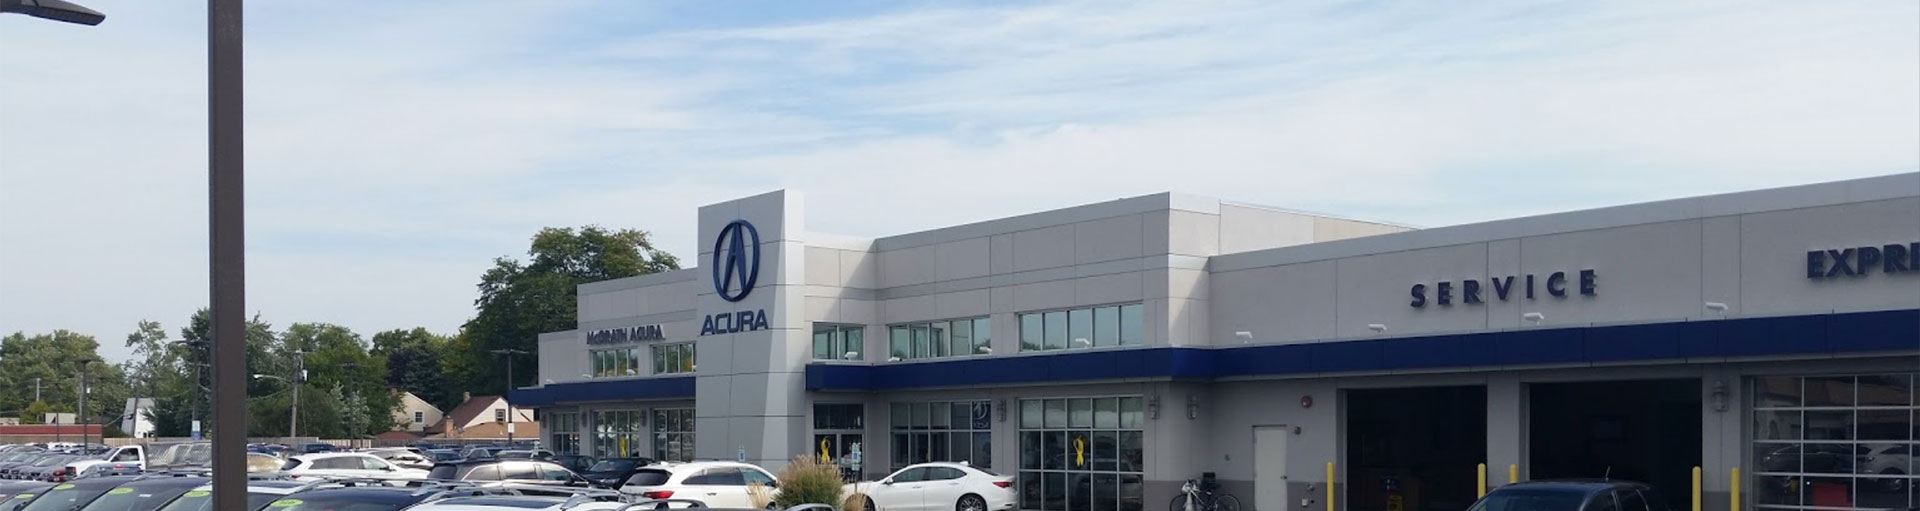 Acura Service Repair Maintenance Special Coupons McGrath Acura Of - Acura dealer service coupons